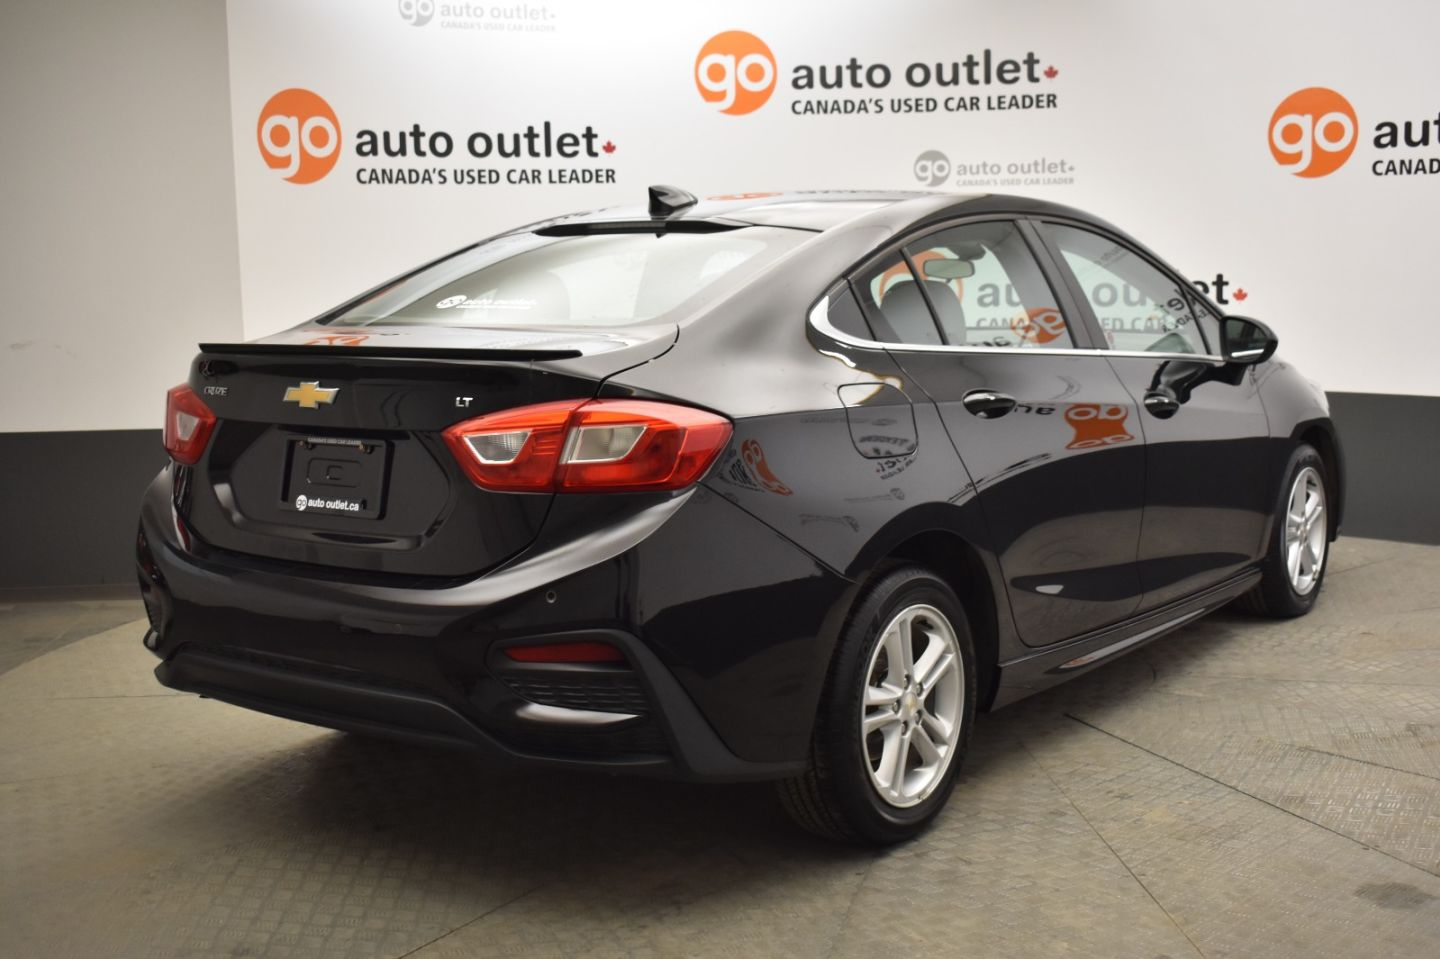 2016 Chevrolet Cruze LT for sale in Leduc, Alberta